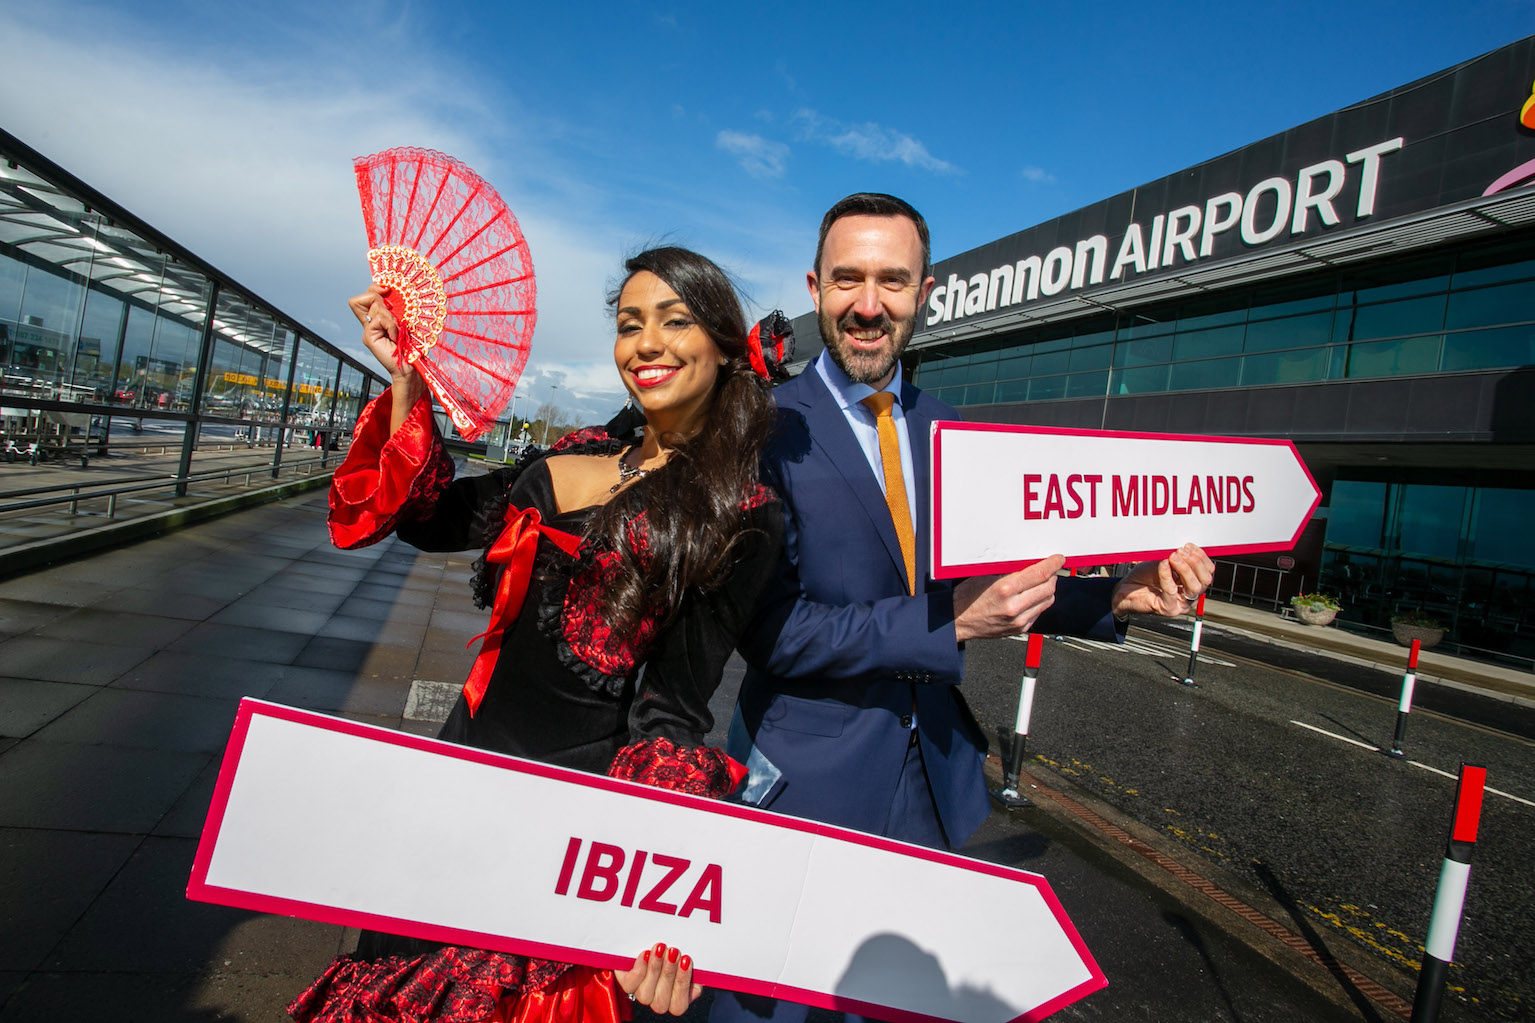 shannon airport new routes